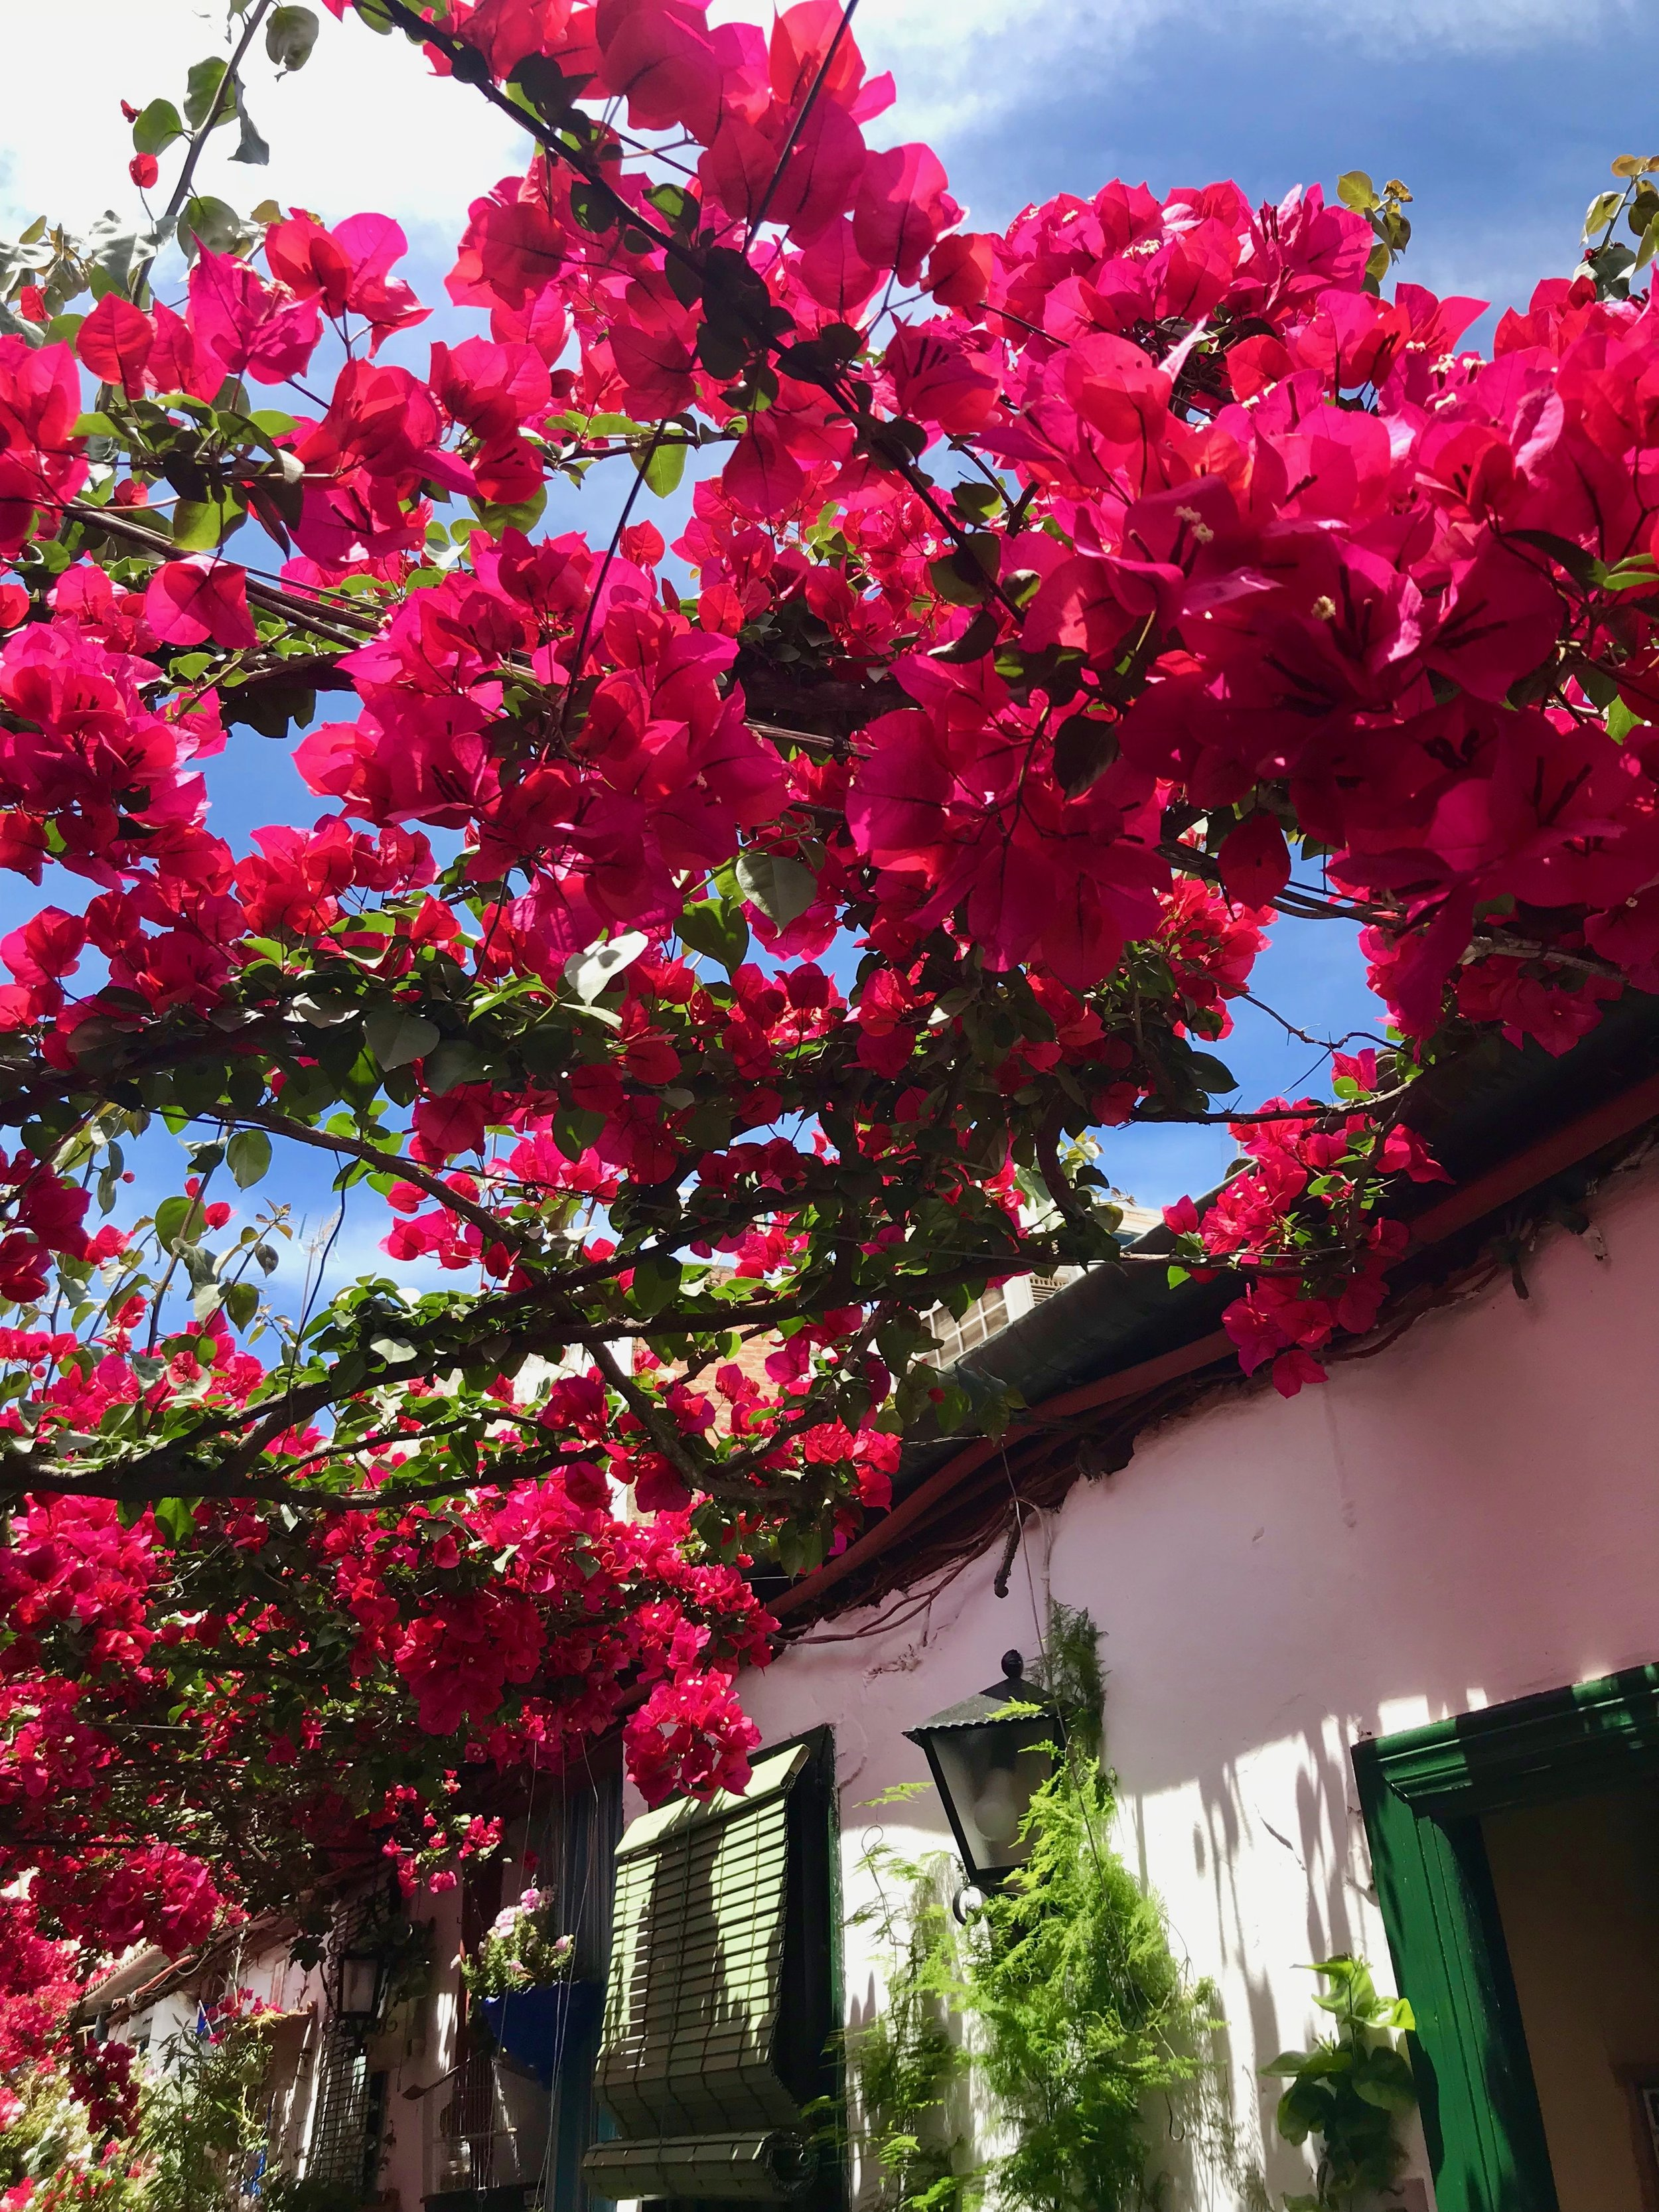 The bougainvillea canopy in one of the patios of the Santa Marina neighborhood.